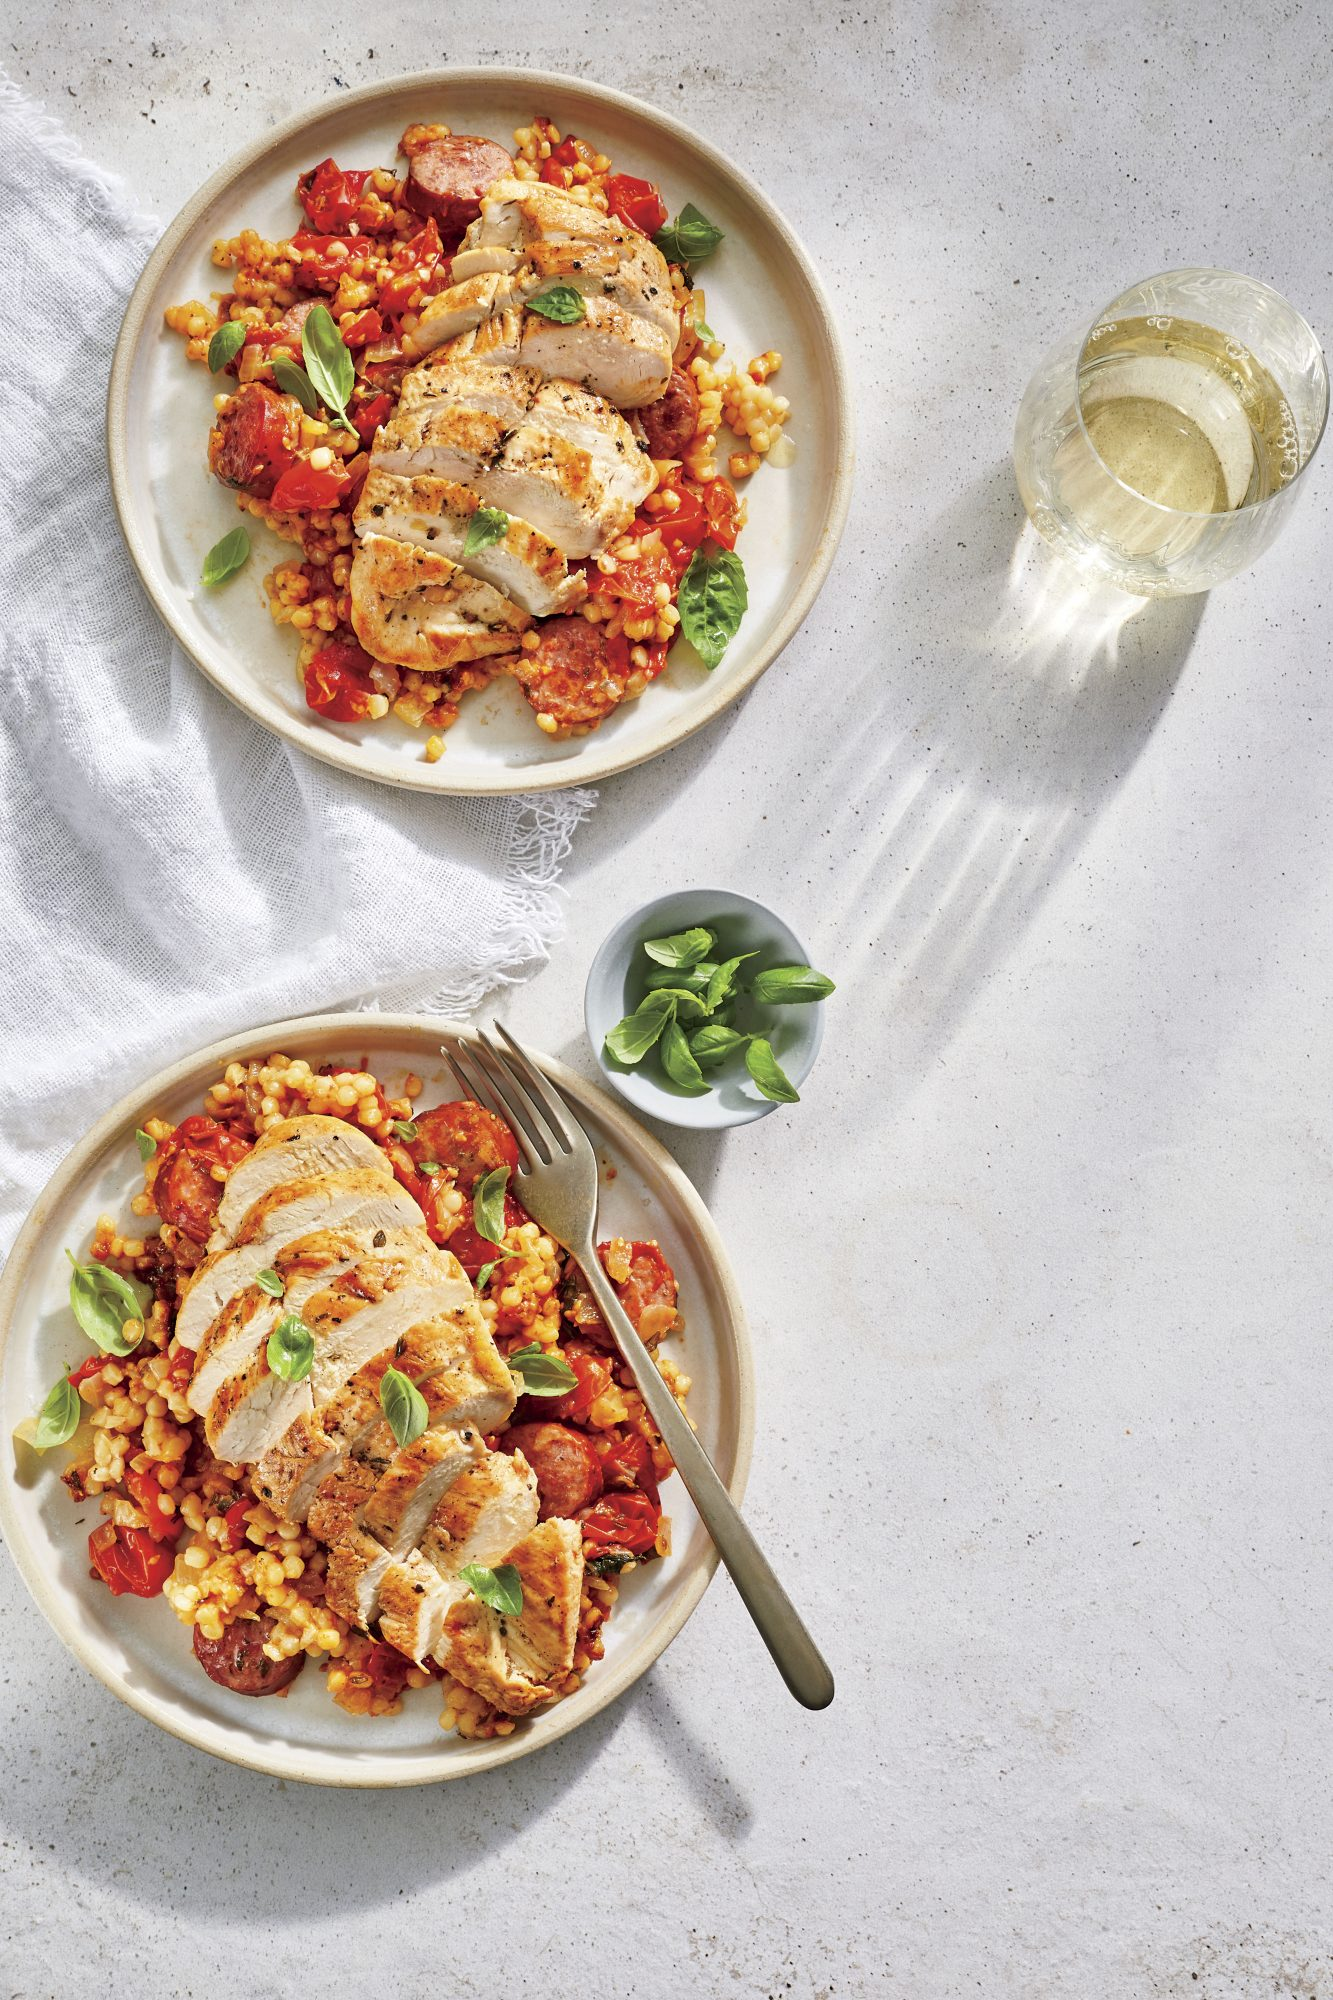 Tomato-Basil Couscous with Chicken and Smoked Sausage